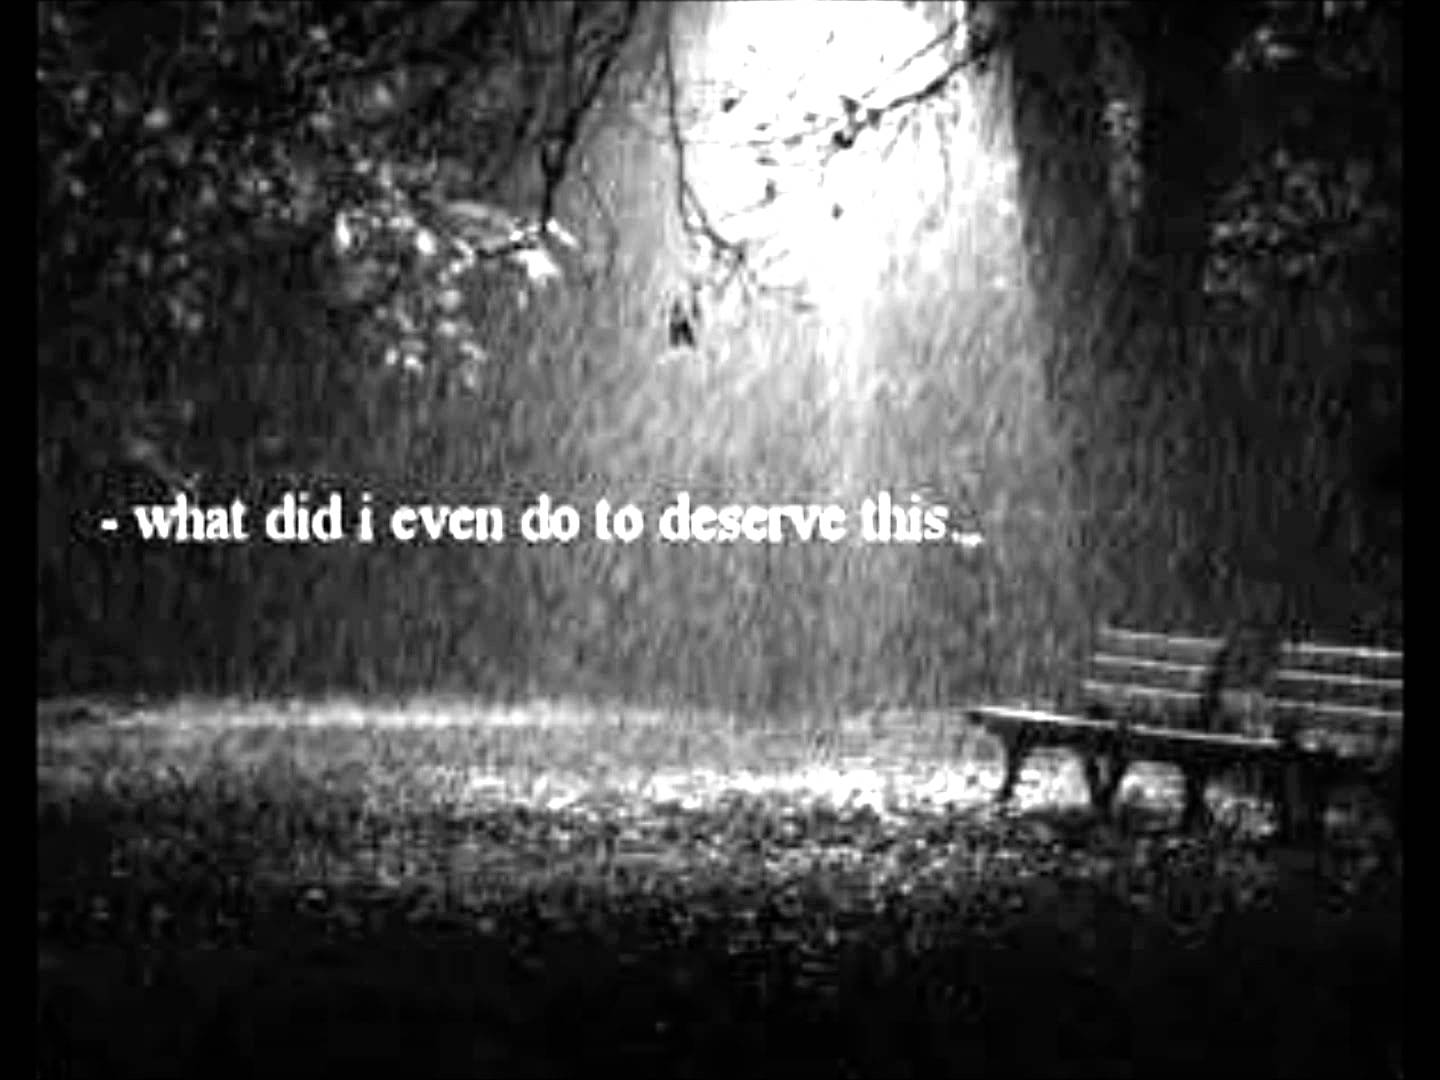 depression images sad wallpaper - photo #27